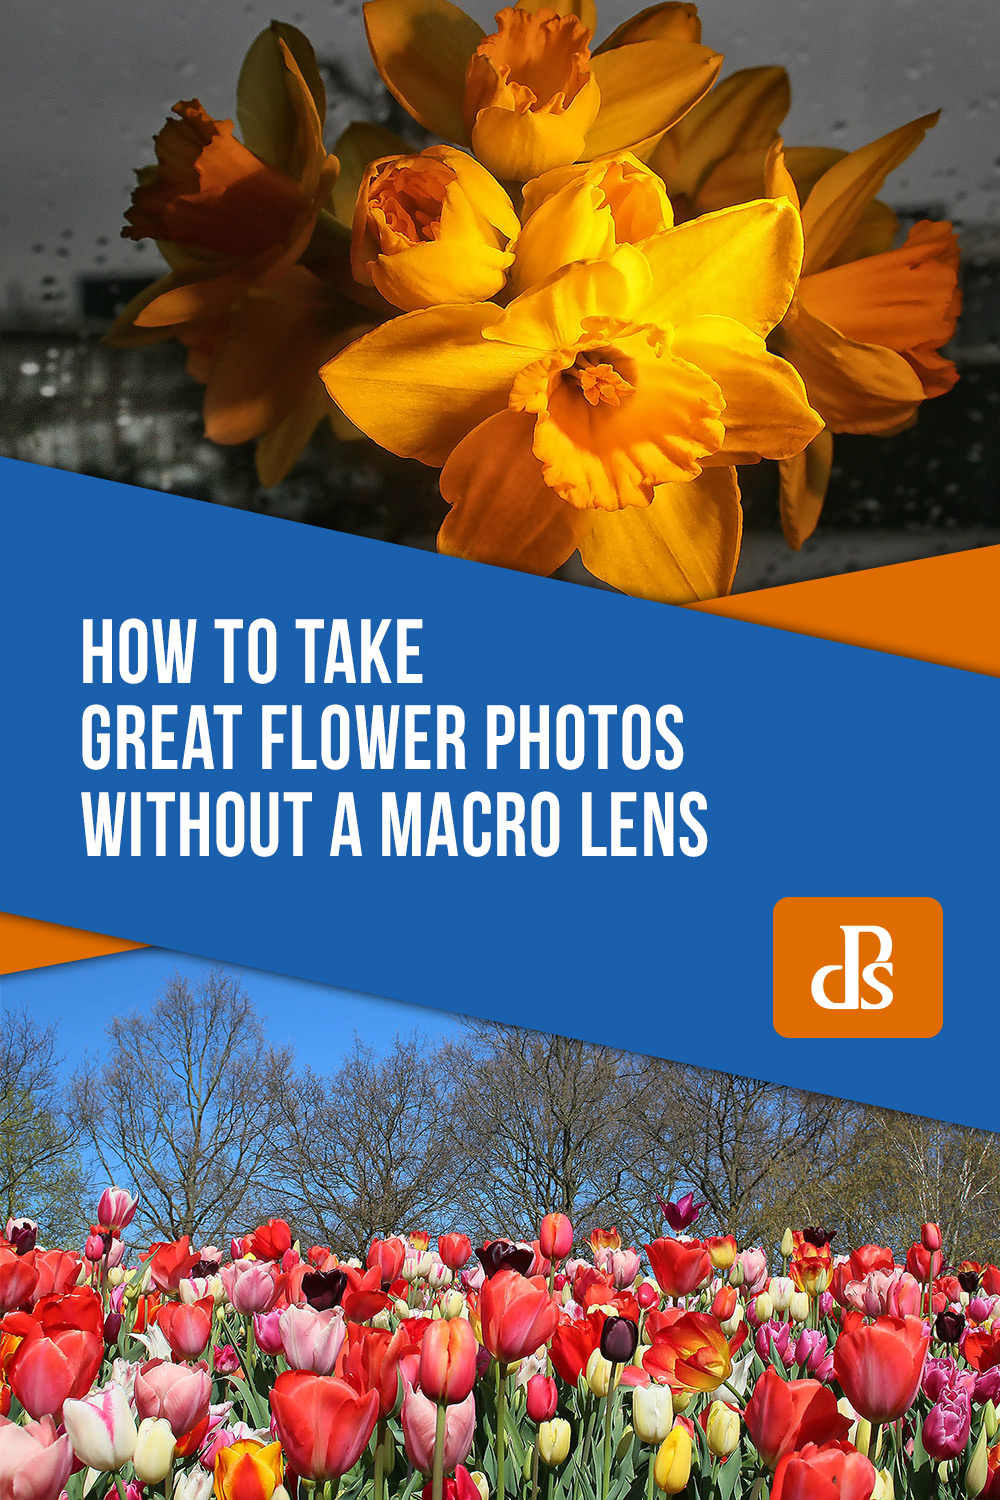 How-to-take-Great-Flower-Photos-without-a-Macro-Lens